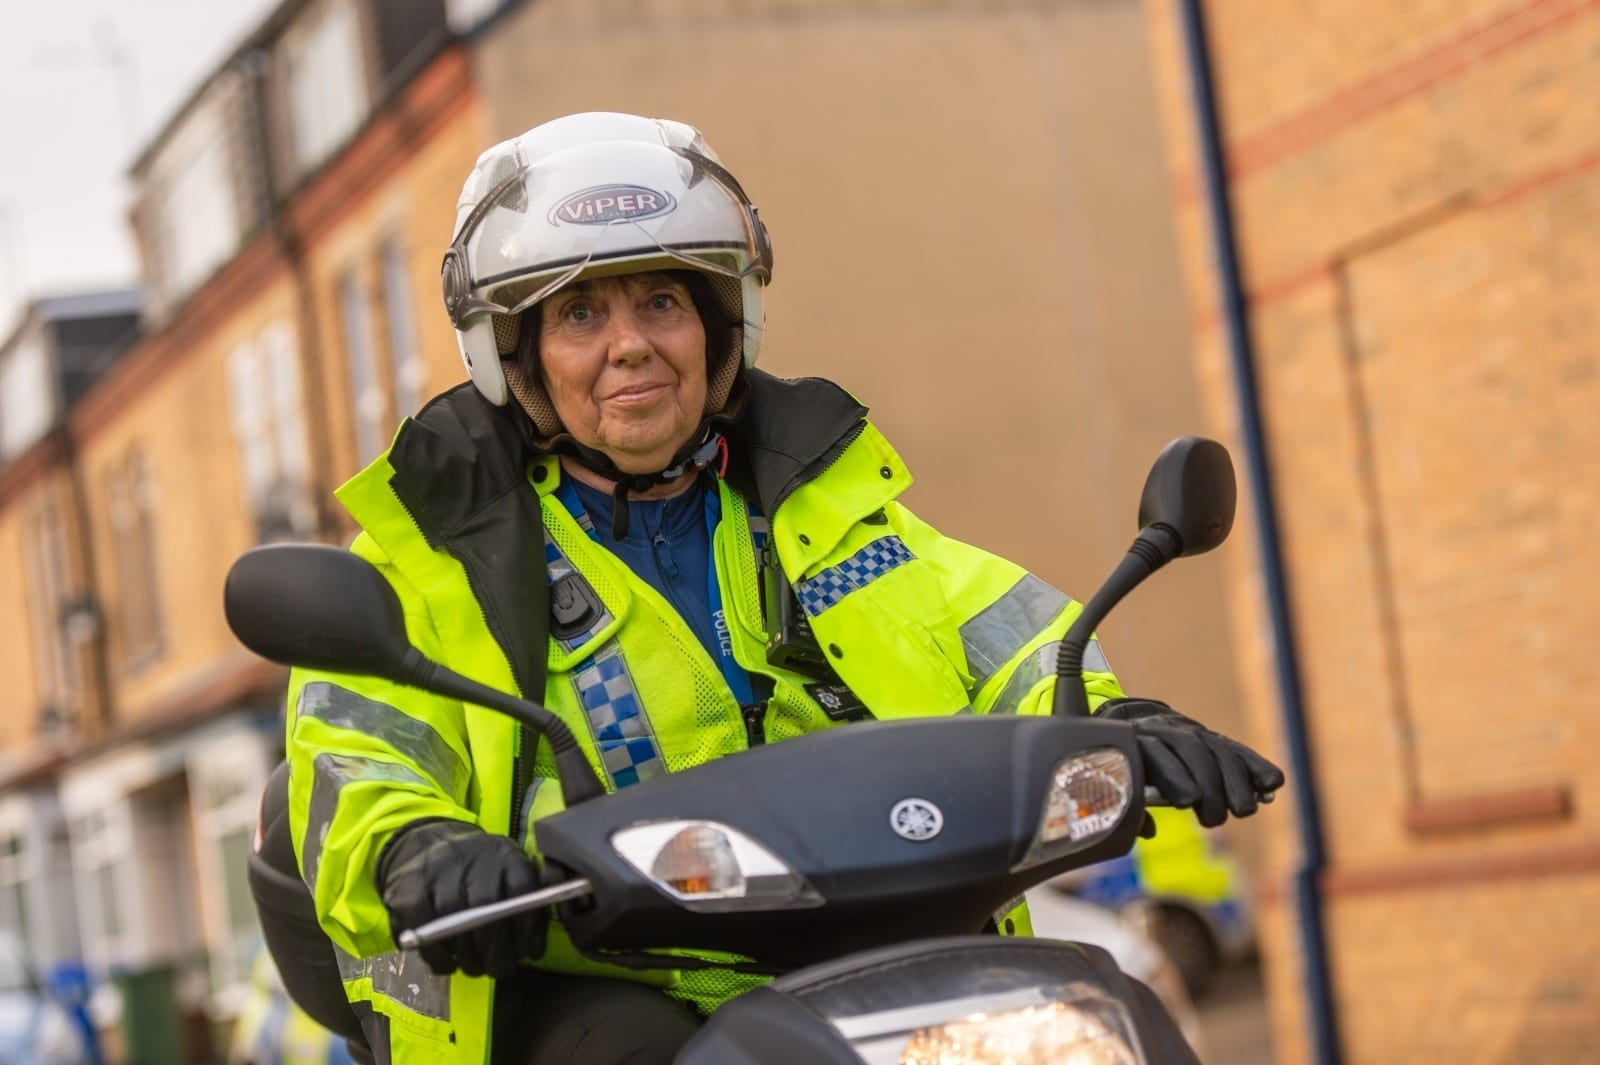 'I Might Look Old But I Feel Young And I Still Have A Lot To Give' - Gran, 71, Is UK's Oldest PCSO And Has No Plans To Retire